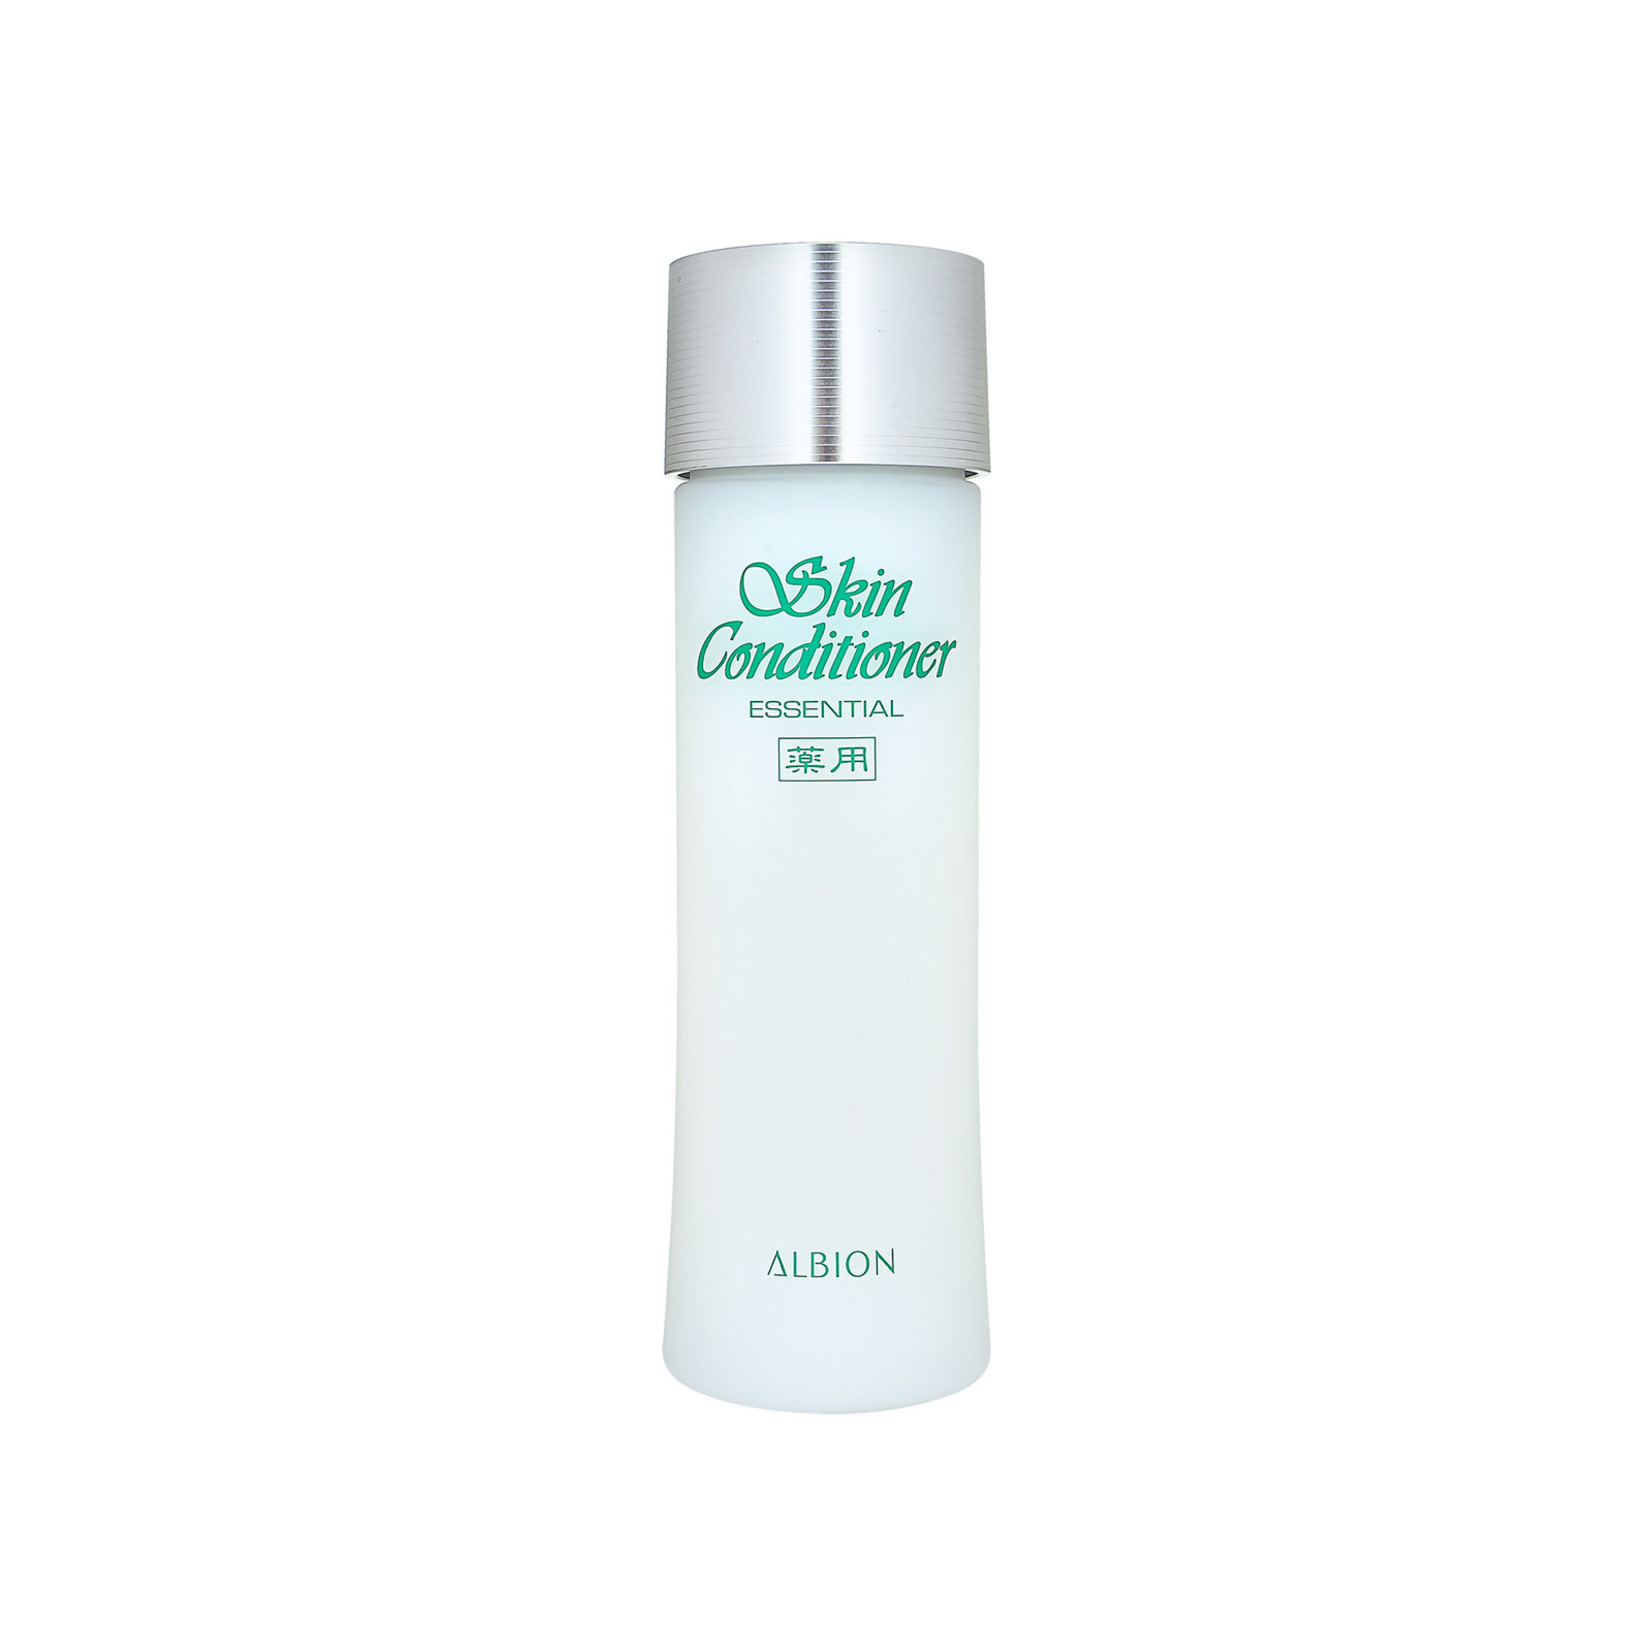 Kanebo Albion Skin Conditioner Essential 330ml